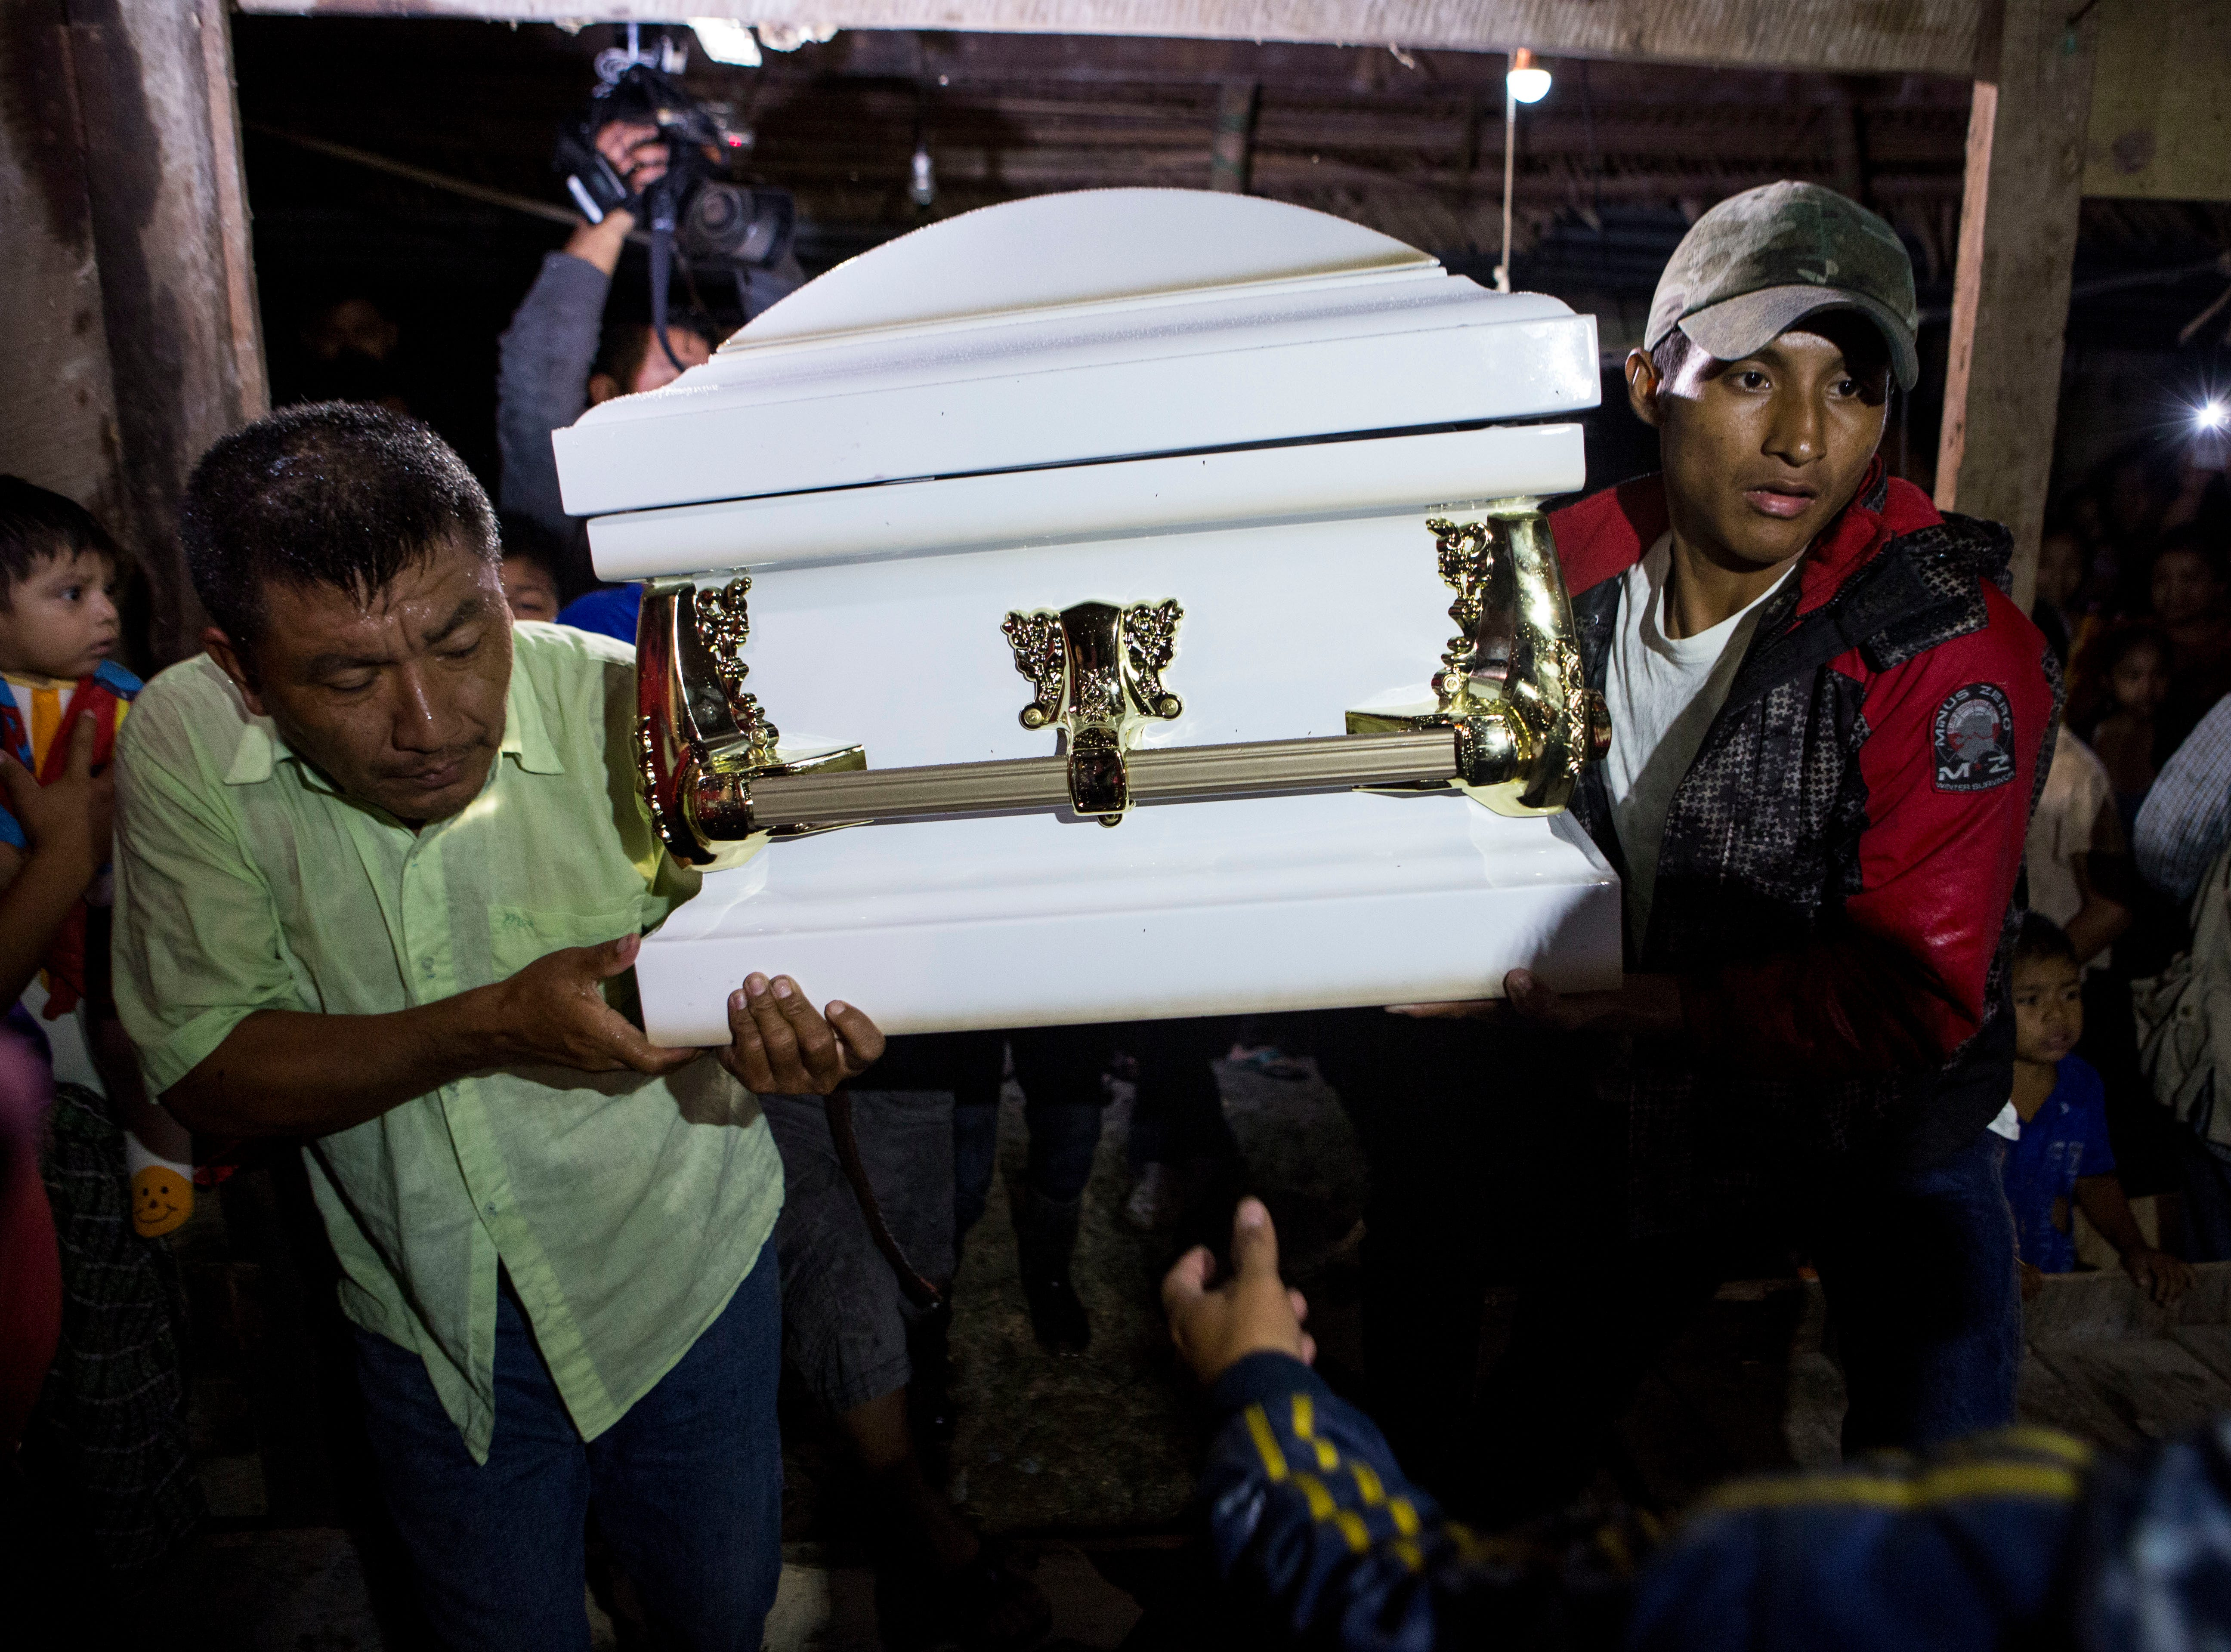 Neighbors carry the coffin that contain the remains of 7-year-old Jakelin Caal Maquin into her grandparent's home in San Antonio Secortez, Guatemala, Monday, Dec. 24, 2018. The body of a 7-year-old girl who died while in the custody of the U.S. Border Patrol was handed over to family members in her native Guatemala on Monday for a last goodbye.